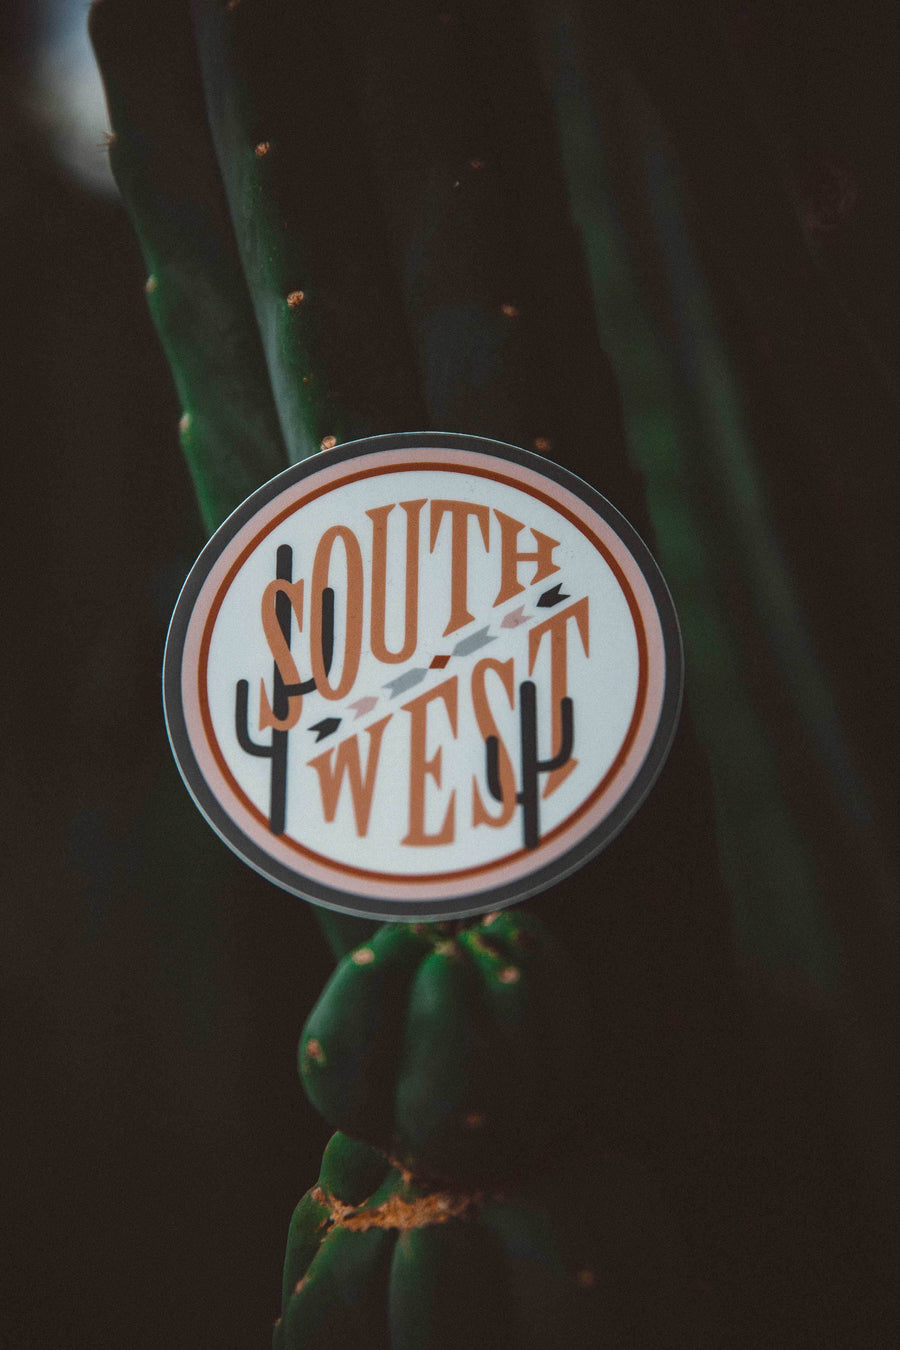 Southwest Sticker - Wondery, A Parks Apparel Brand